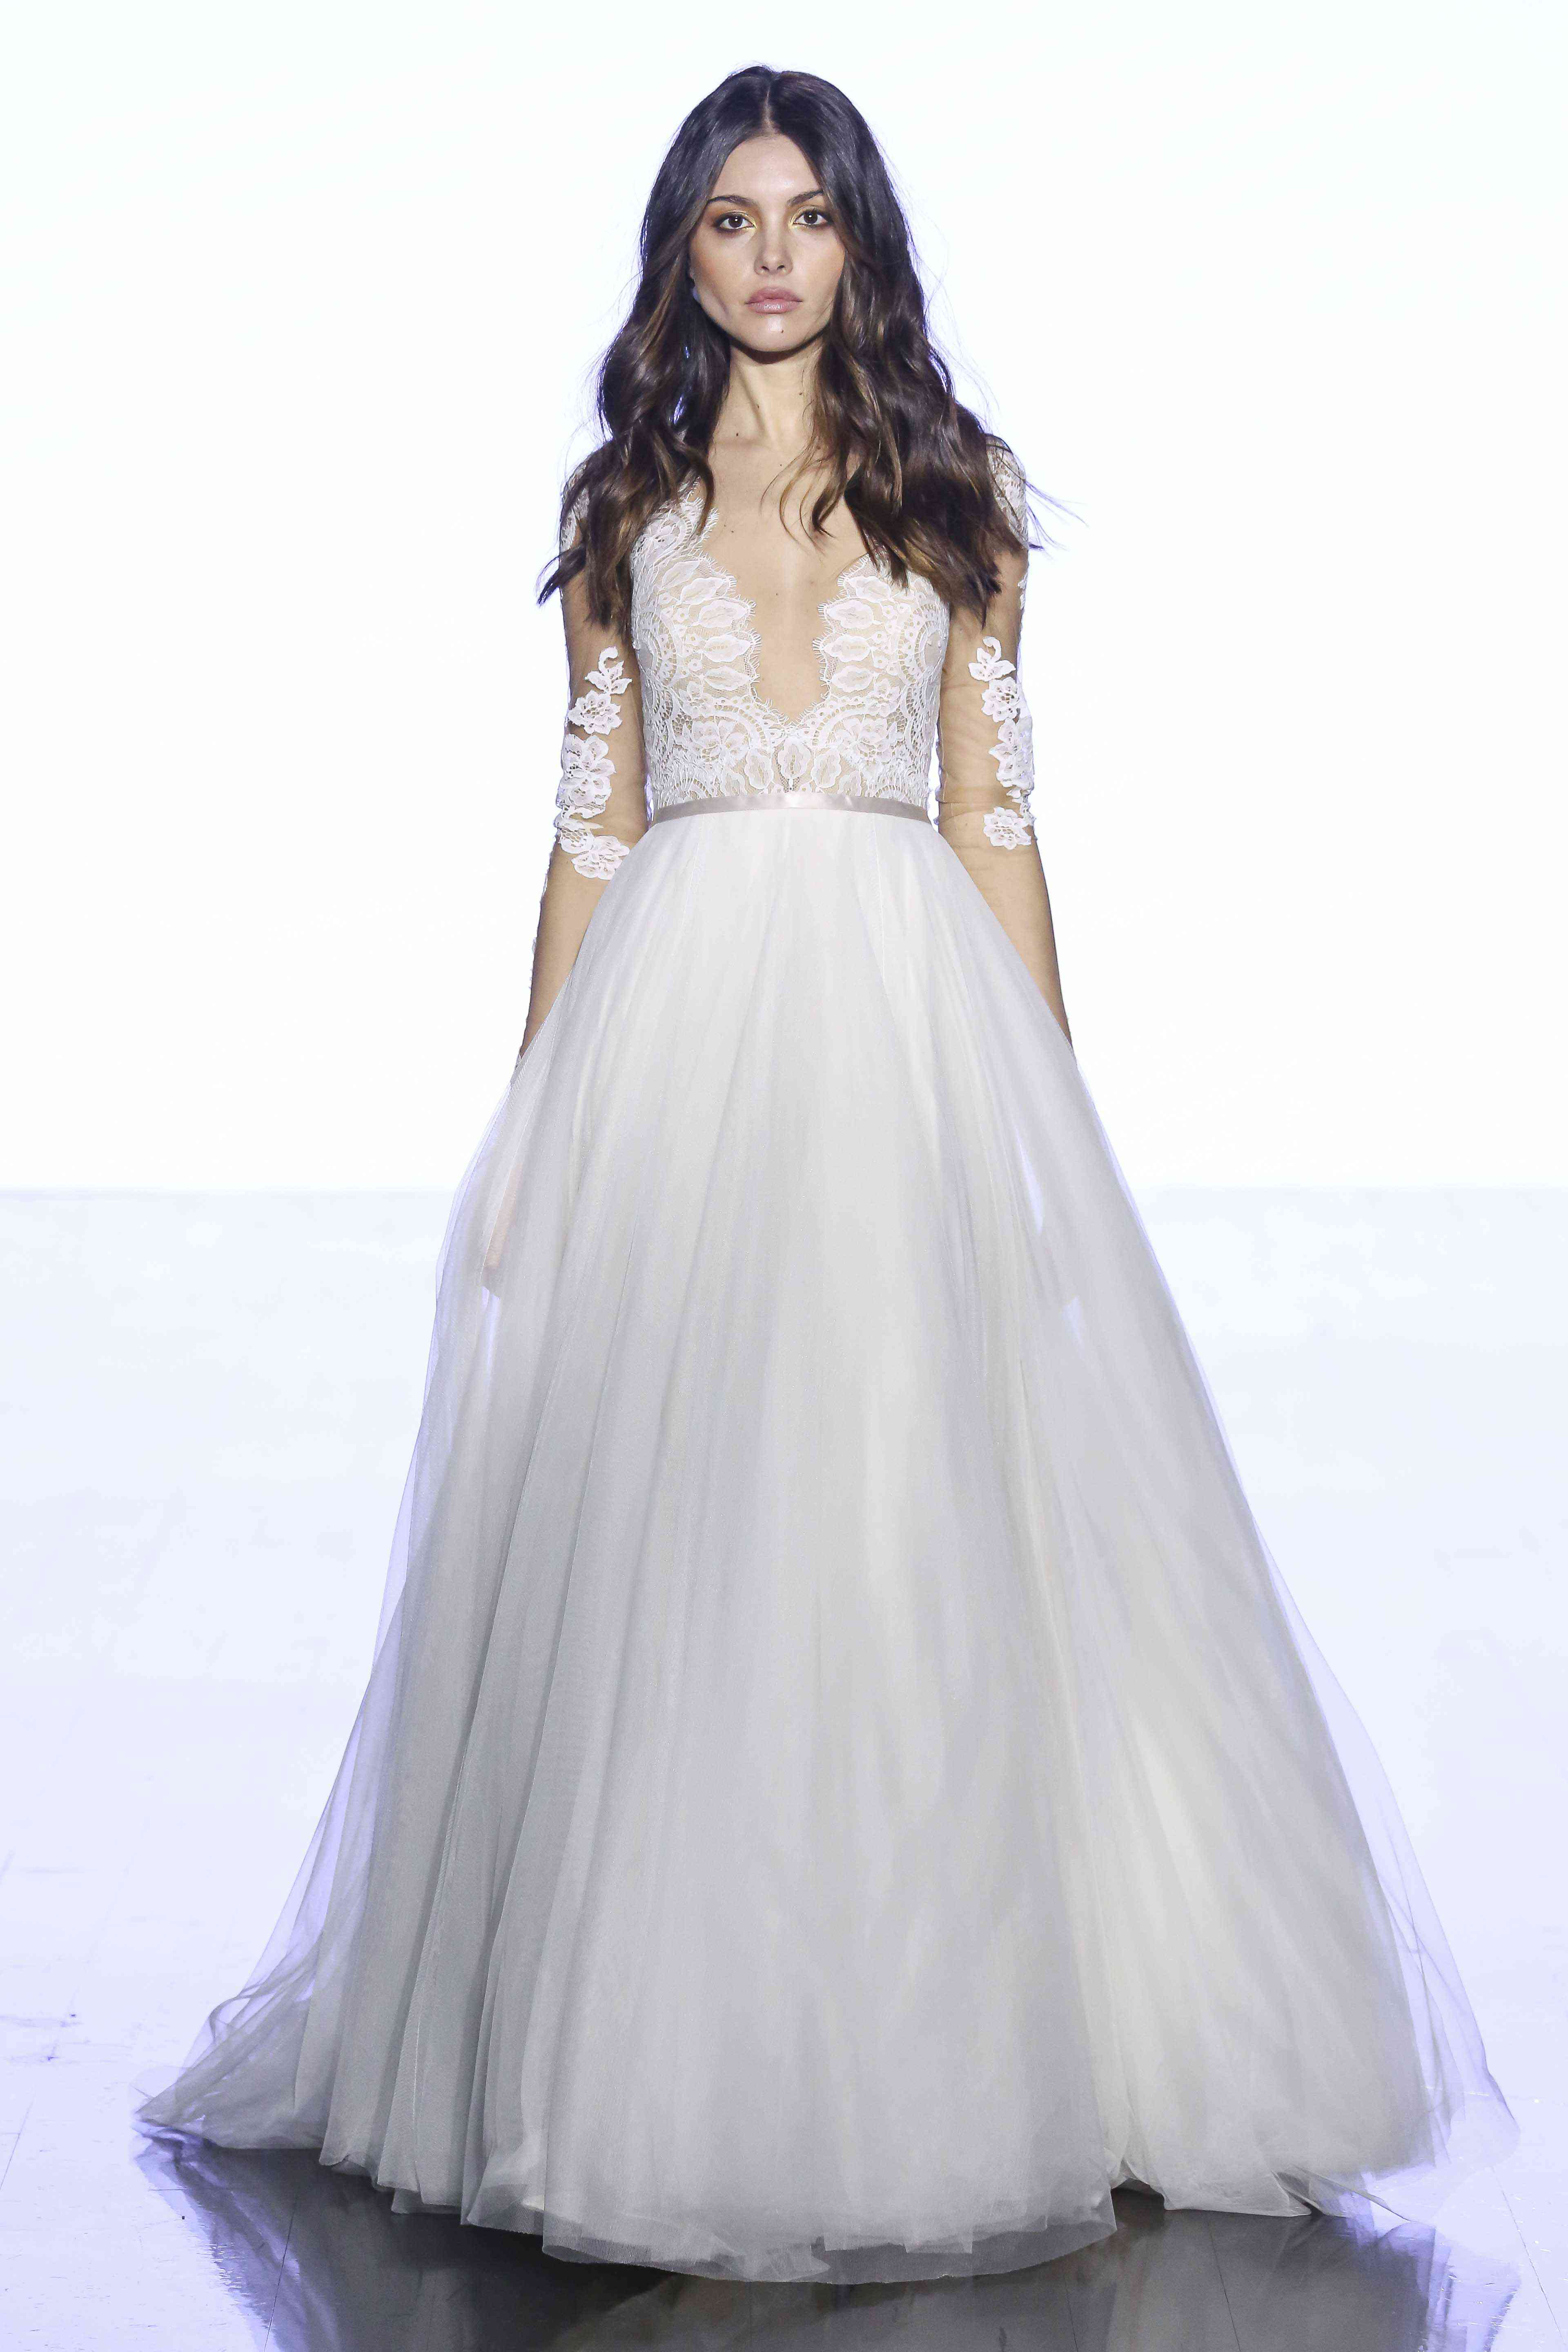 Model in A-line gown with a lace-accented long-sleeve illusion tulle bodice and a full net skirt with a satin waistband